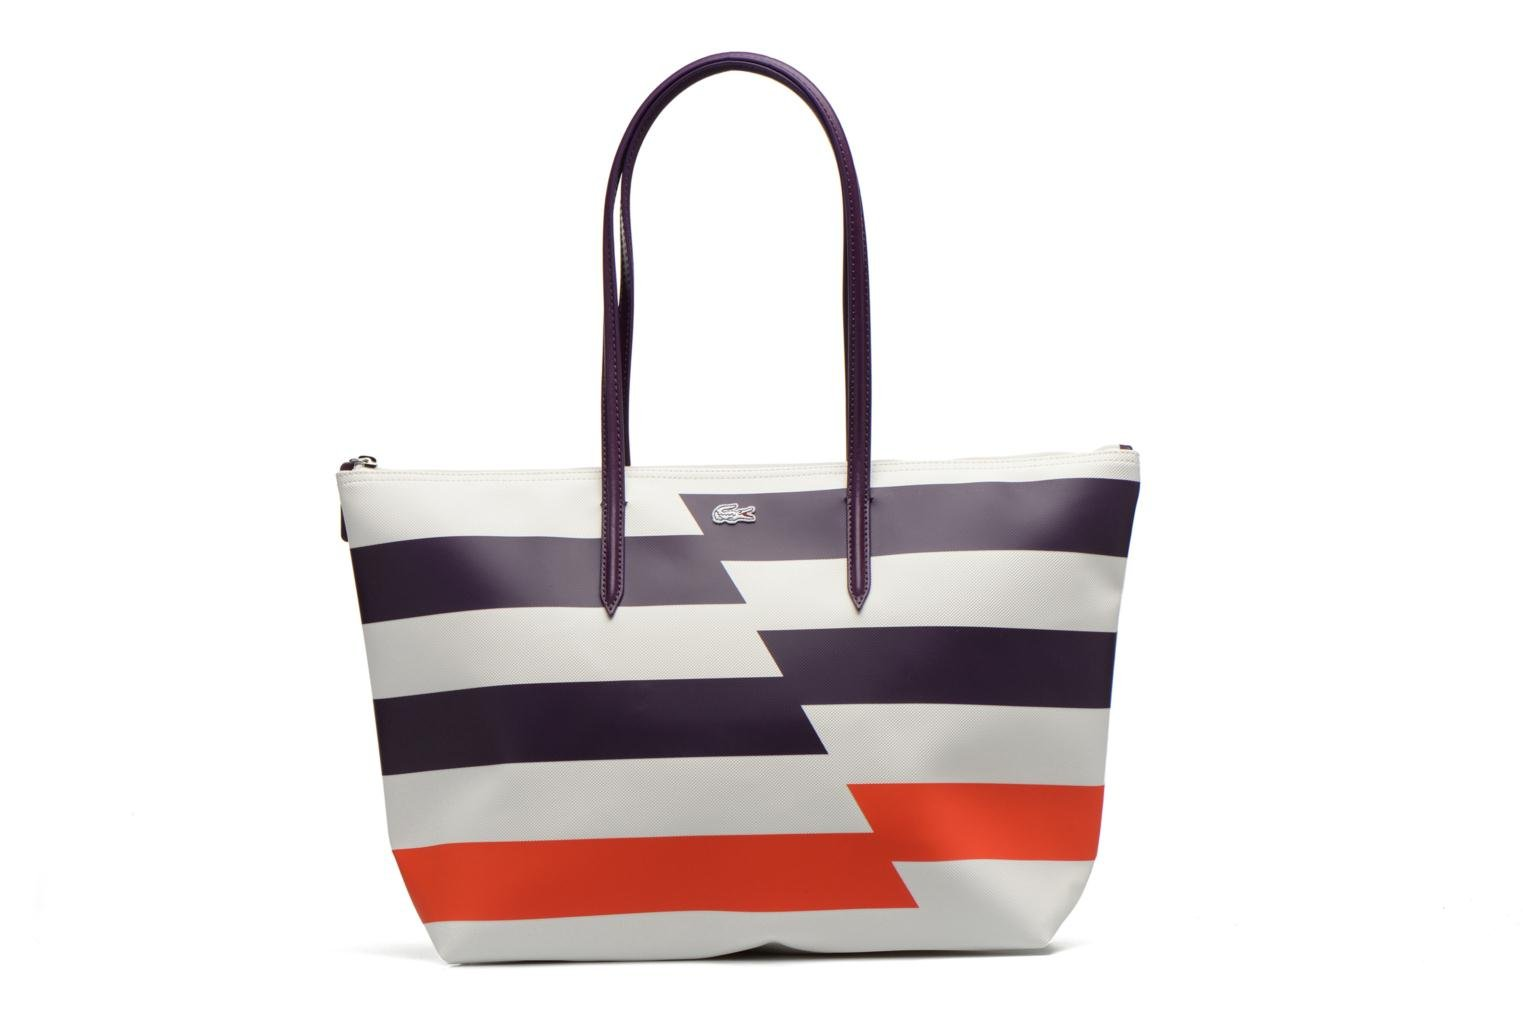 Handtassen L. 1212 FANTAISIE LG Shopping Bag by Lacoste